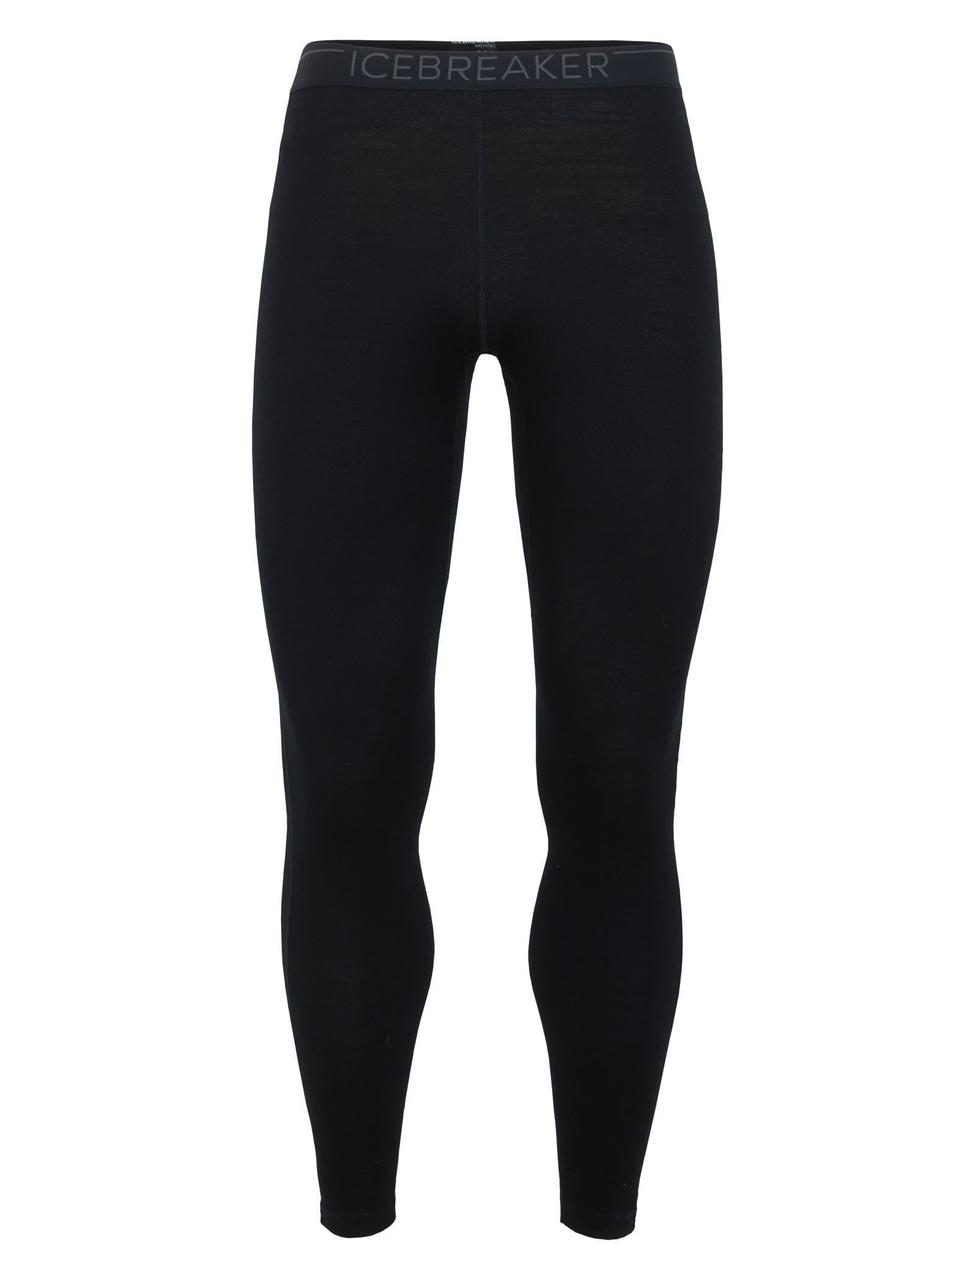 Термобрюки мужские Icebreaker 260 Tech Leggings Black-Monsoon S (104 373 001 S)